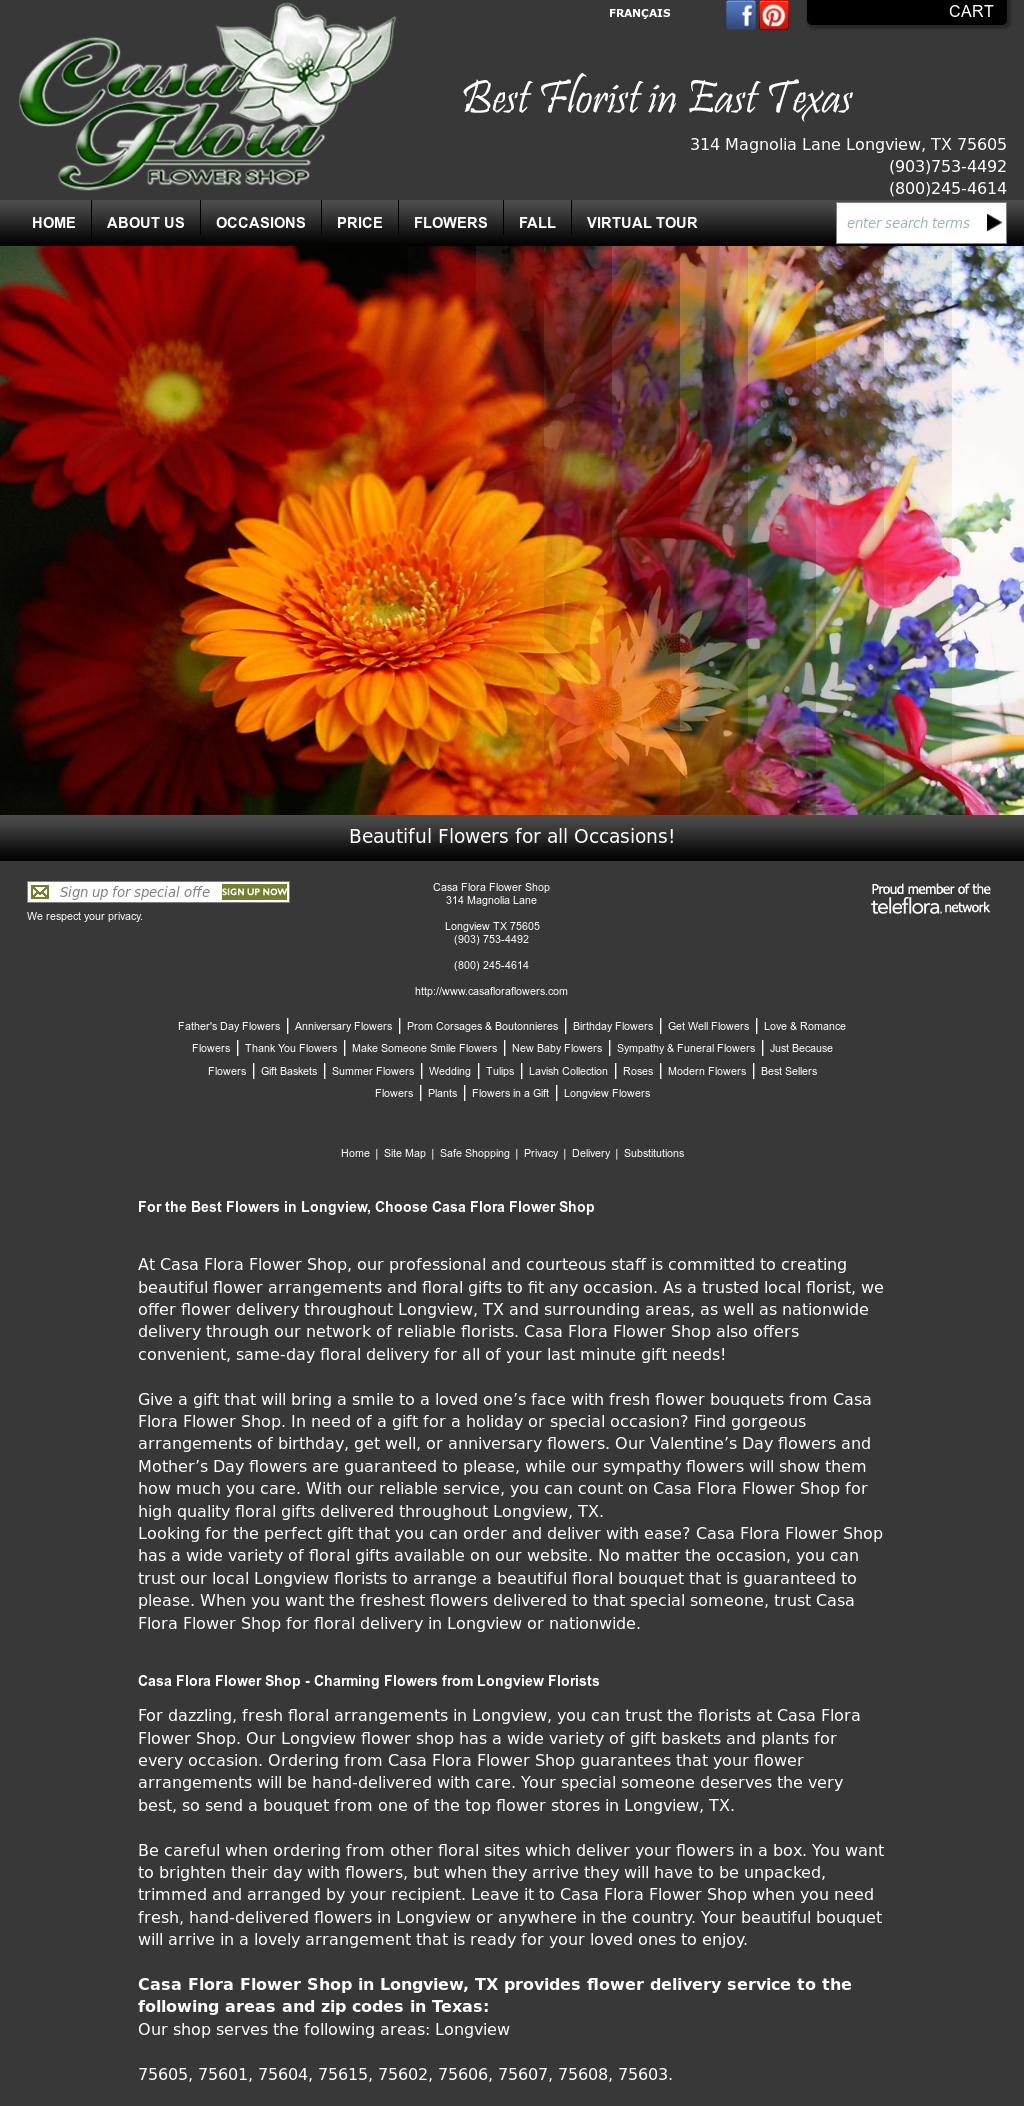 Casa Flora Flower Shop* Competitors, Revenue and Employees - Owler Company Profile